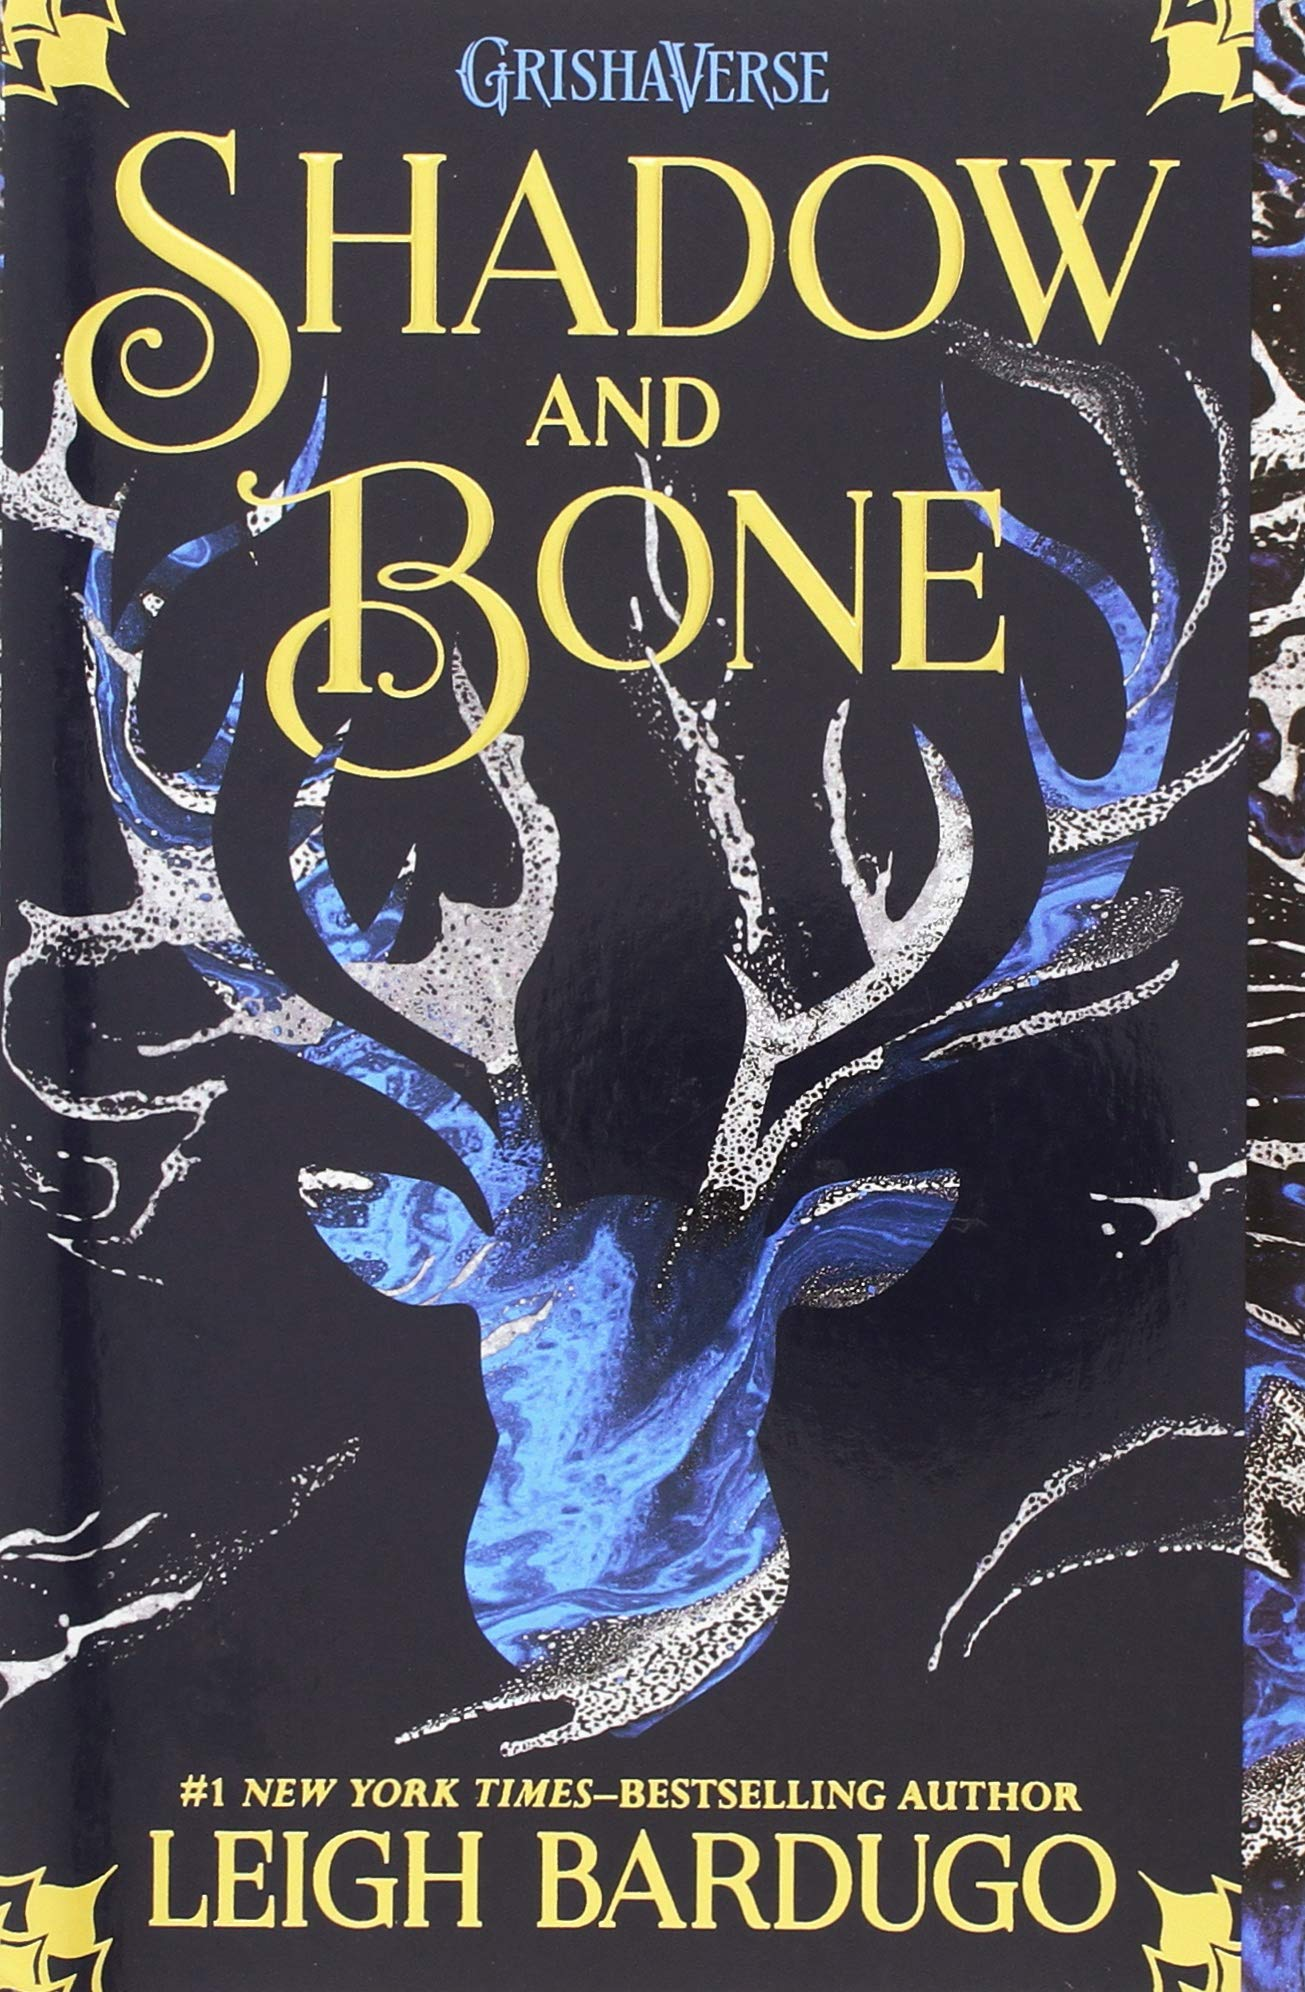 Amazon.com: Shadow and Bone (Grisha Trilogy) [Assorted Cover image ...